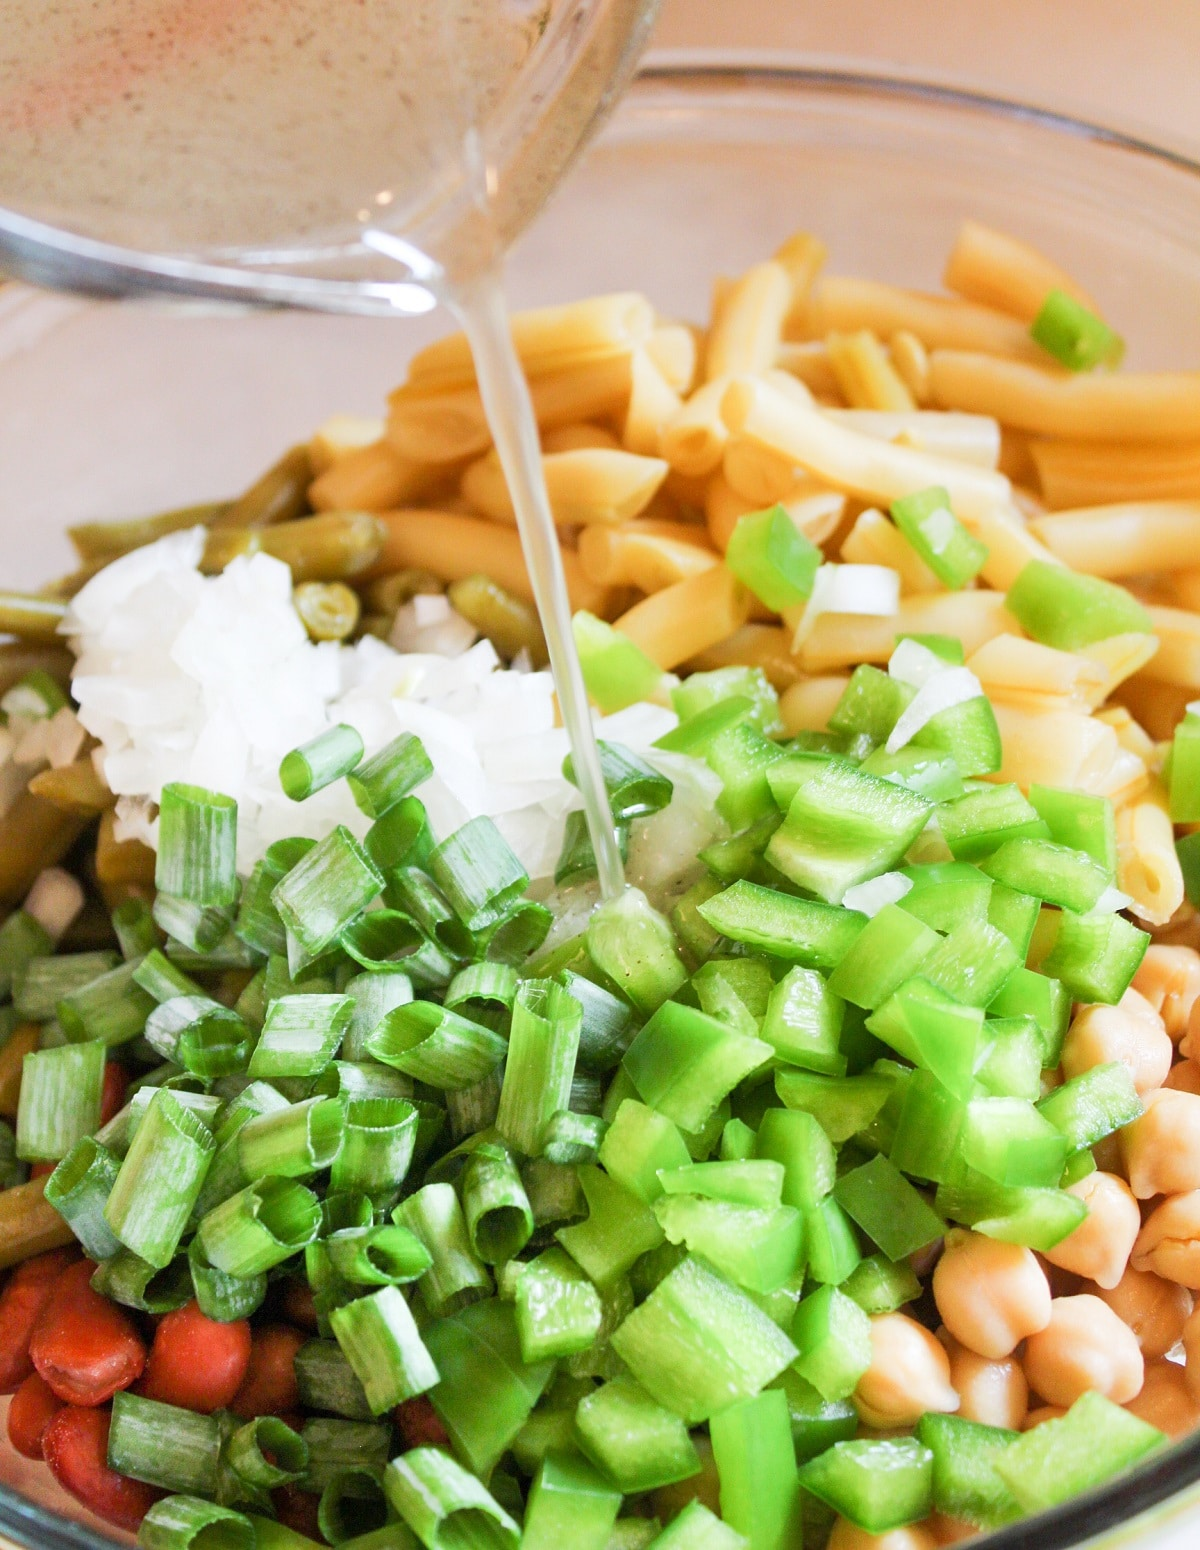 dressing poured over 3-bean salad